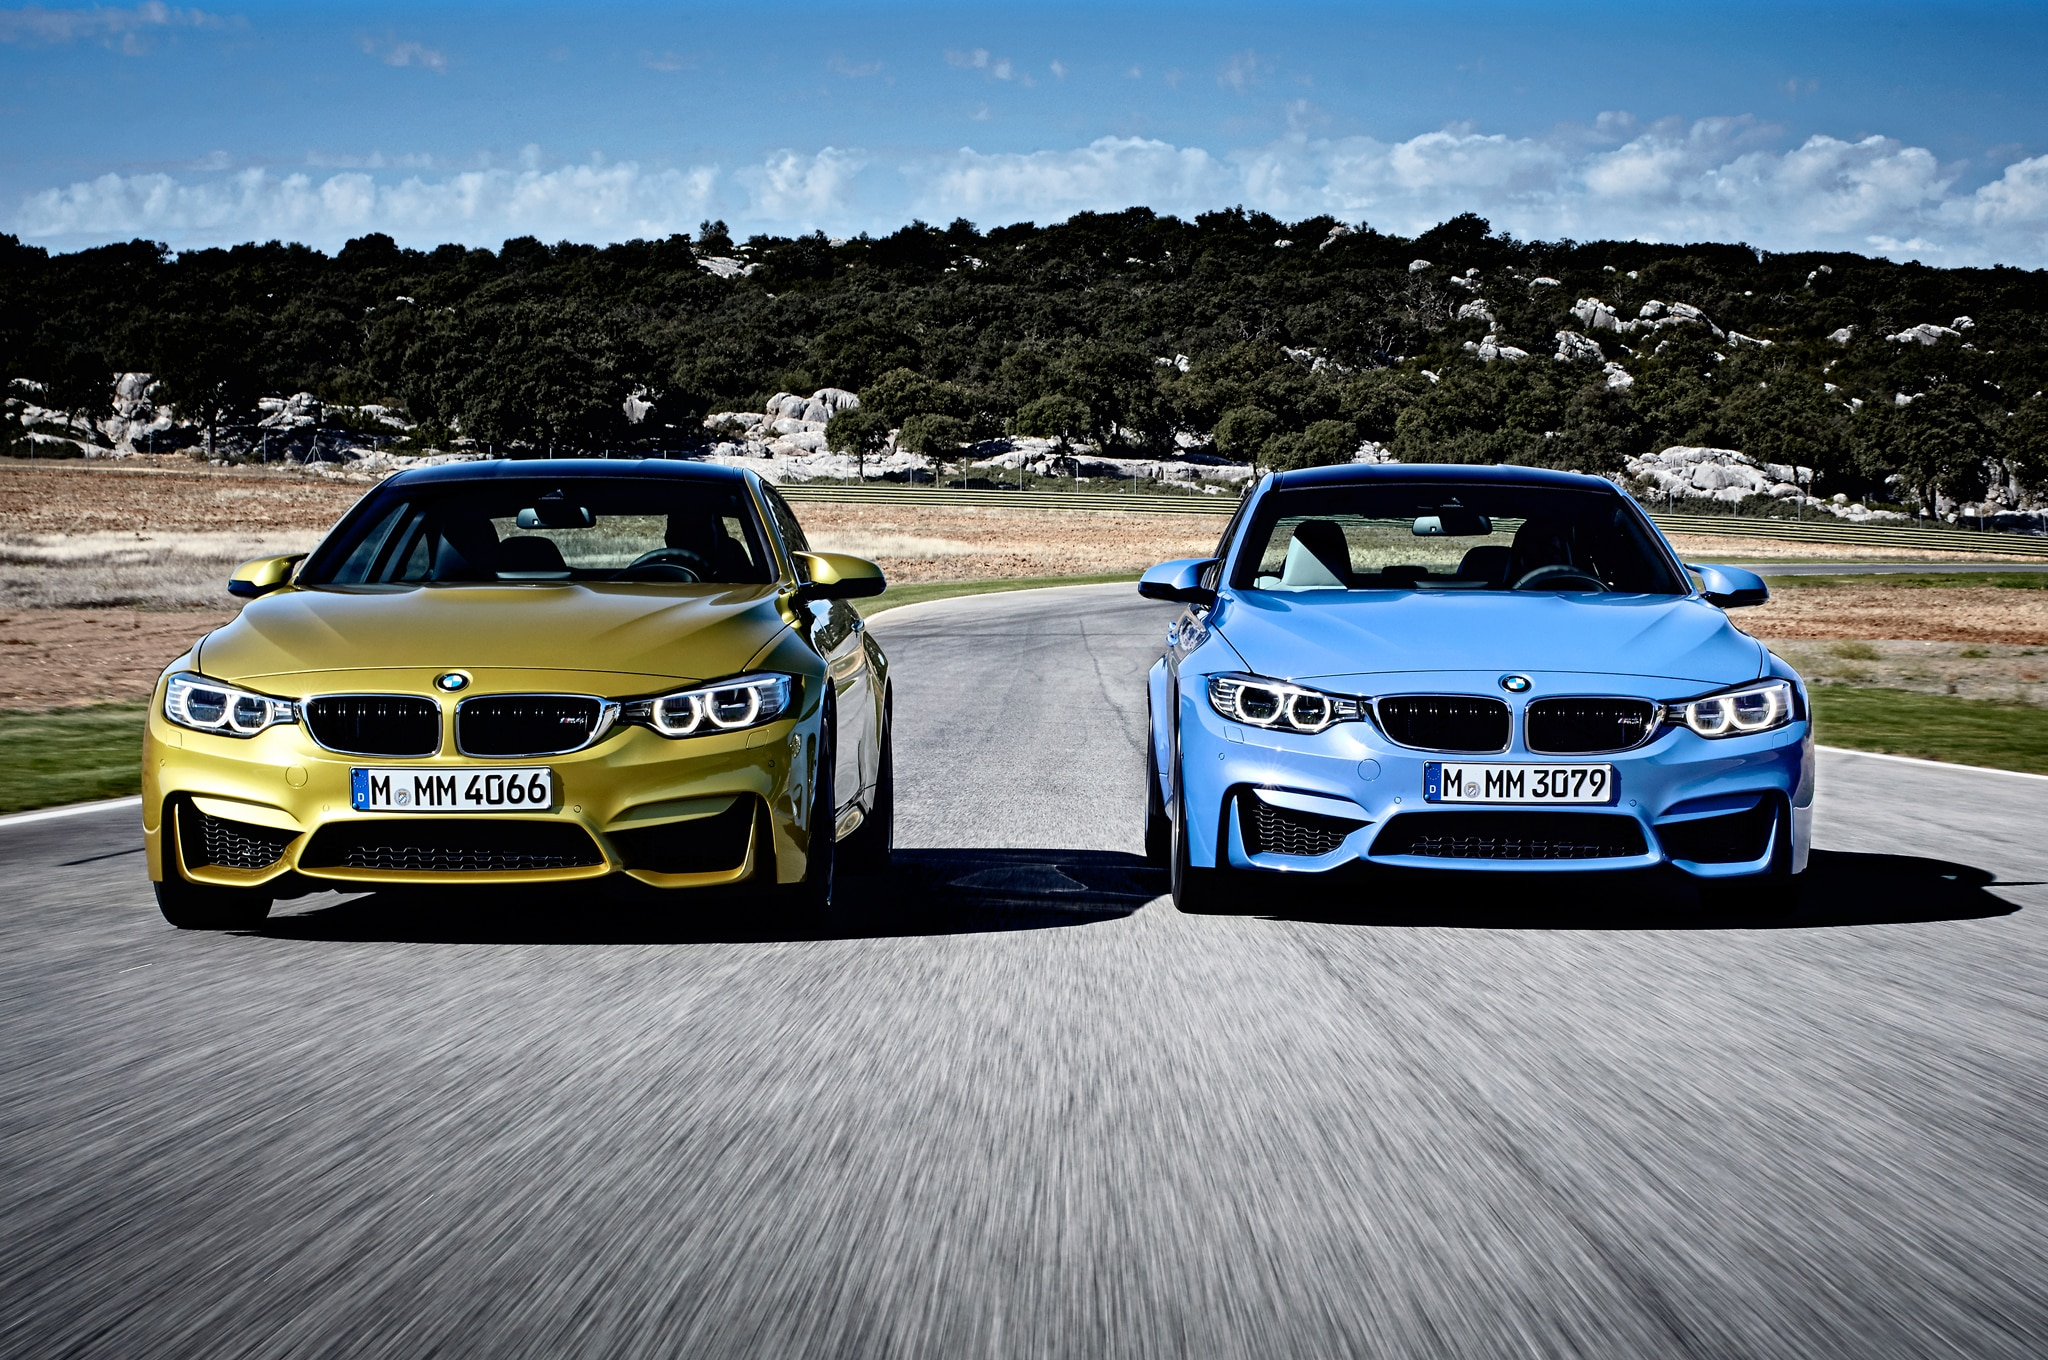 Bmw M4 Coupe 2015 Supercar Car Germany Sport 4000x3000